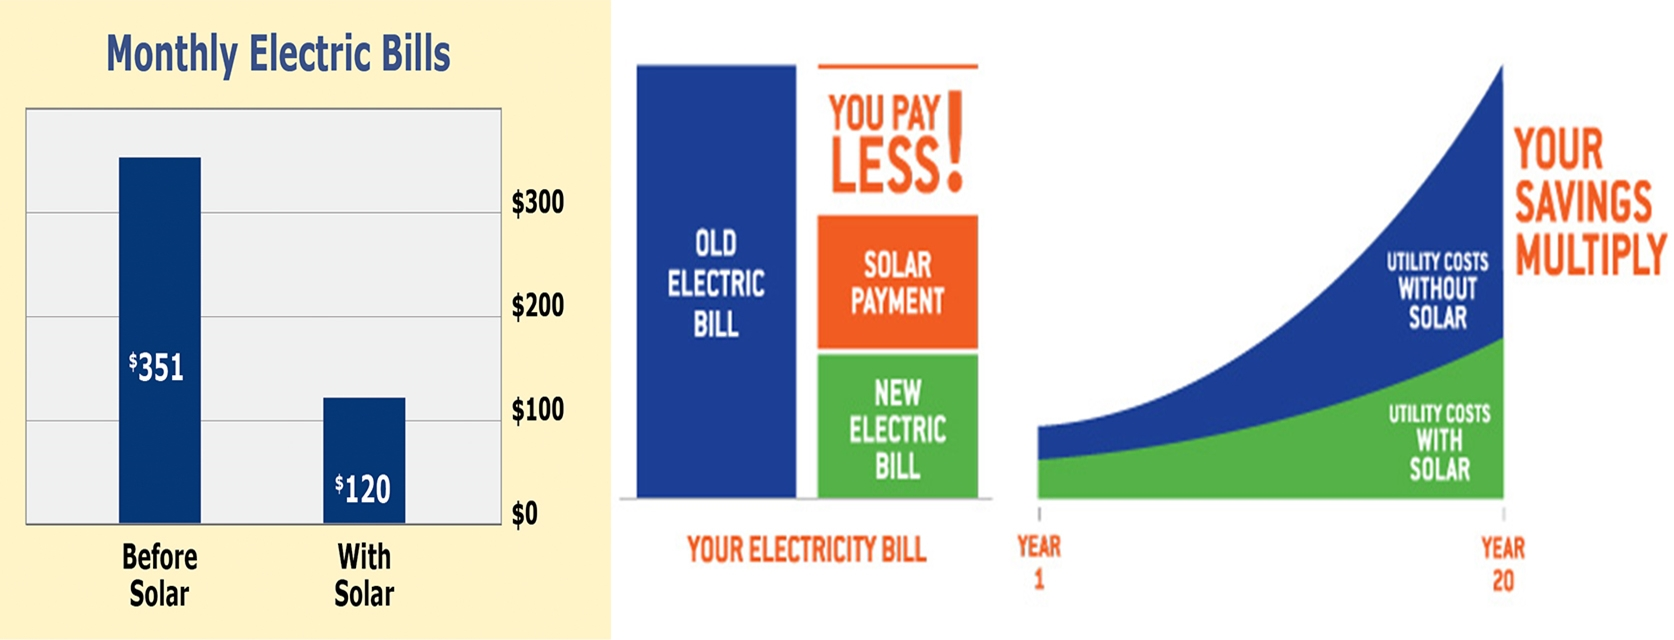 Reduction in your electric bills